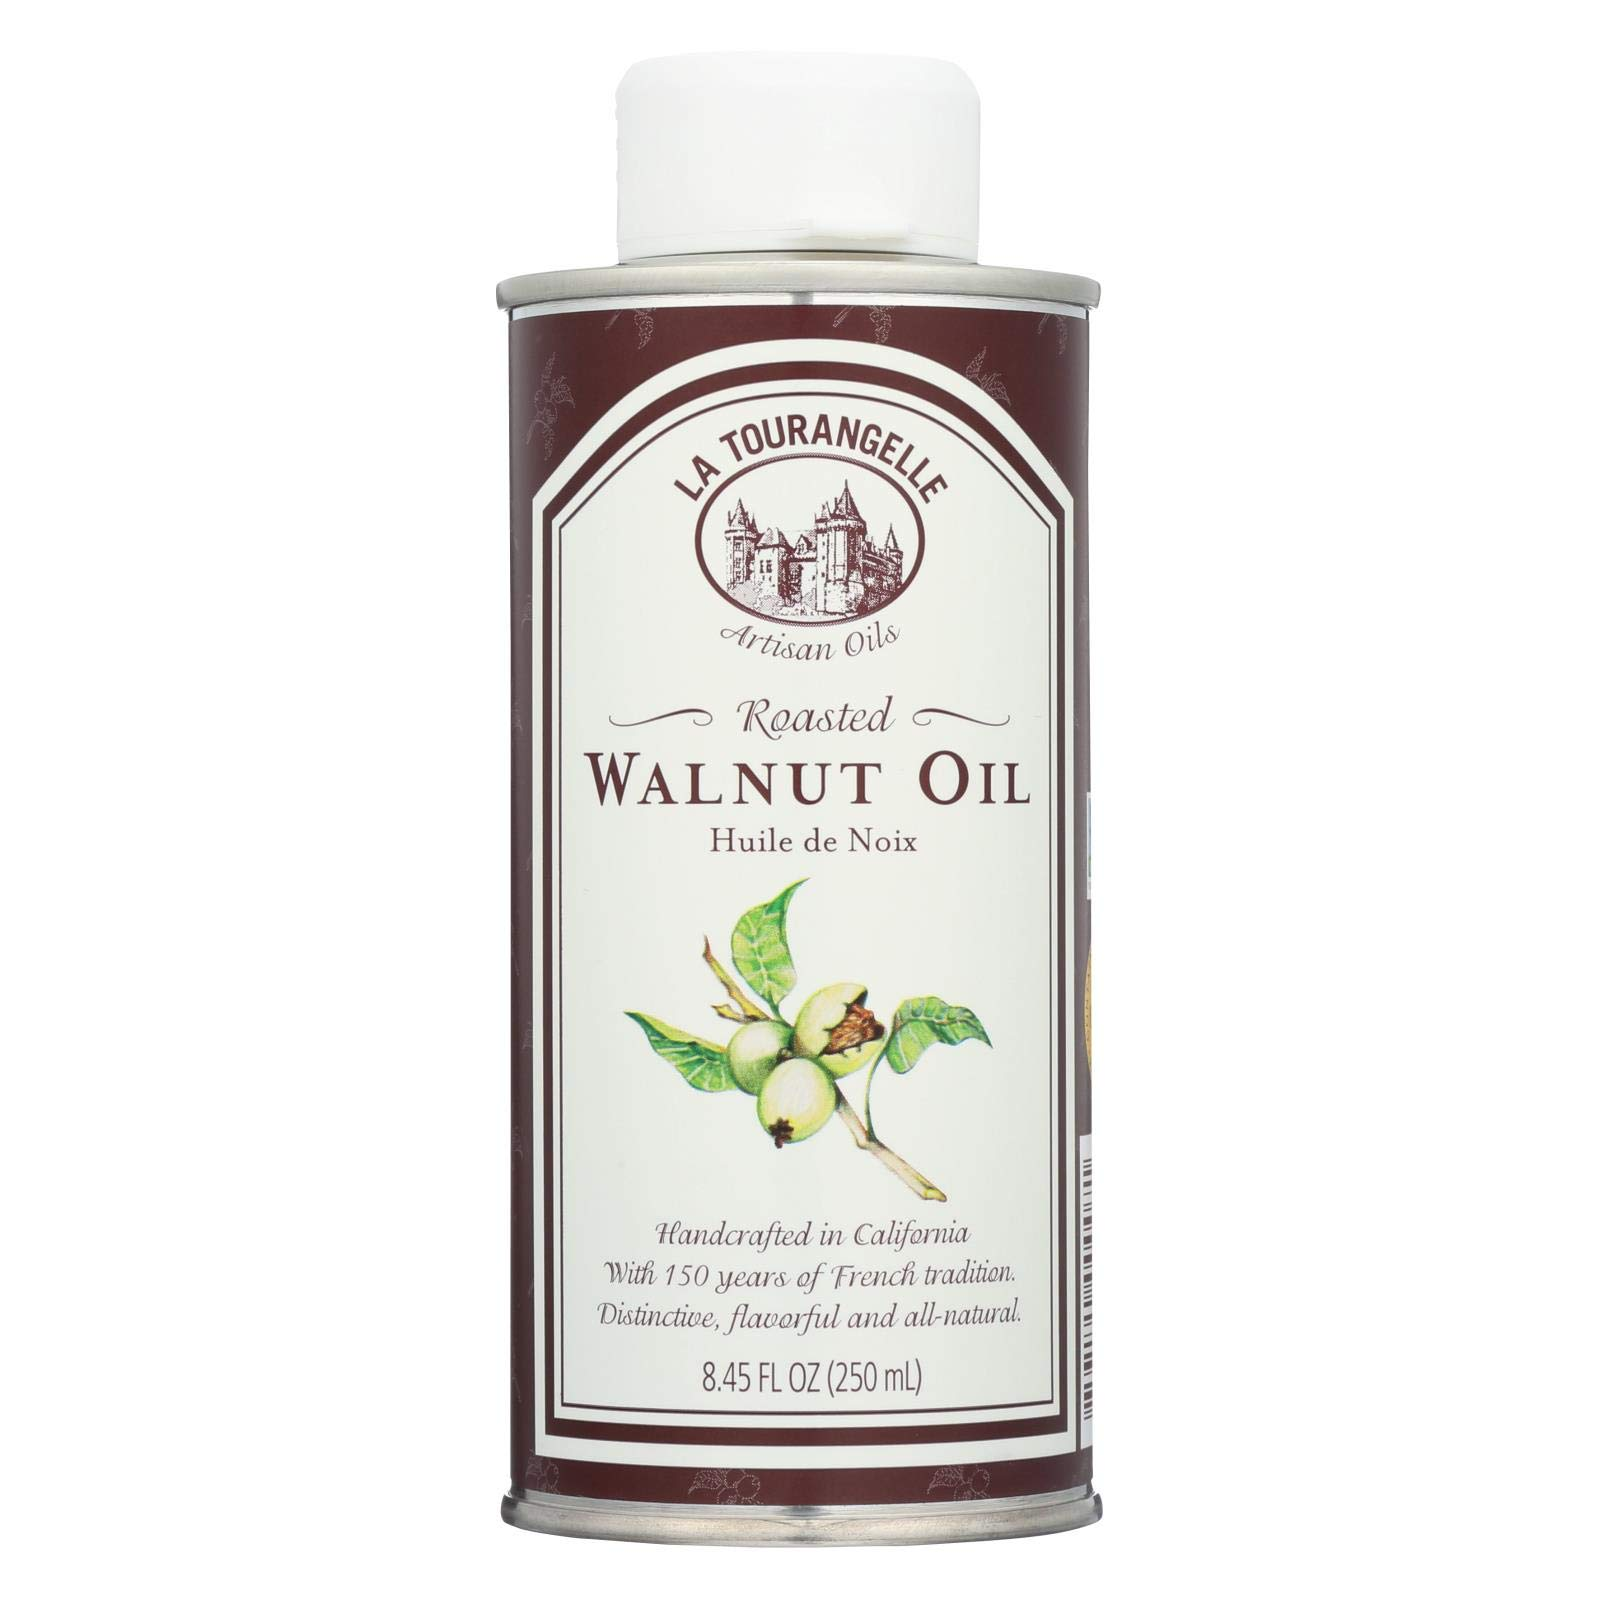 La Tourangelle Roasted Walnut Oil, 250 Milliliter - 6 per case. by La Tourangelle